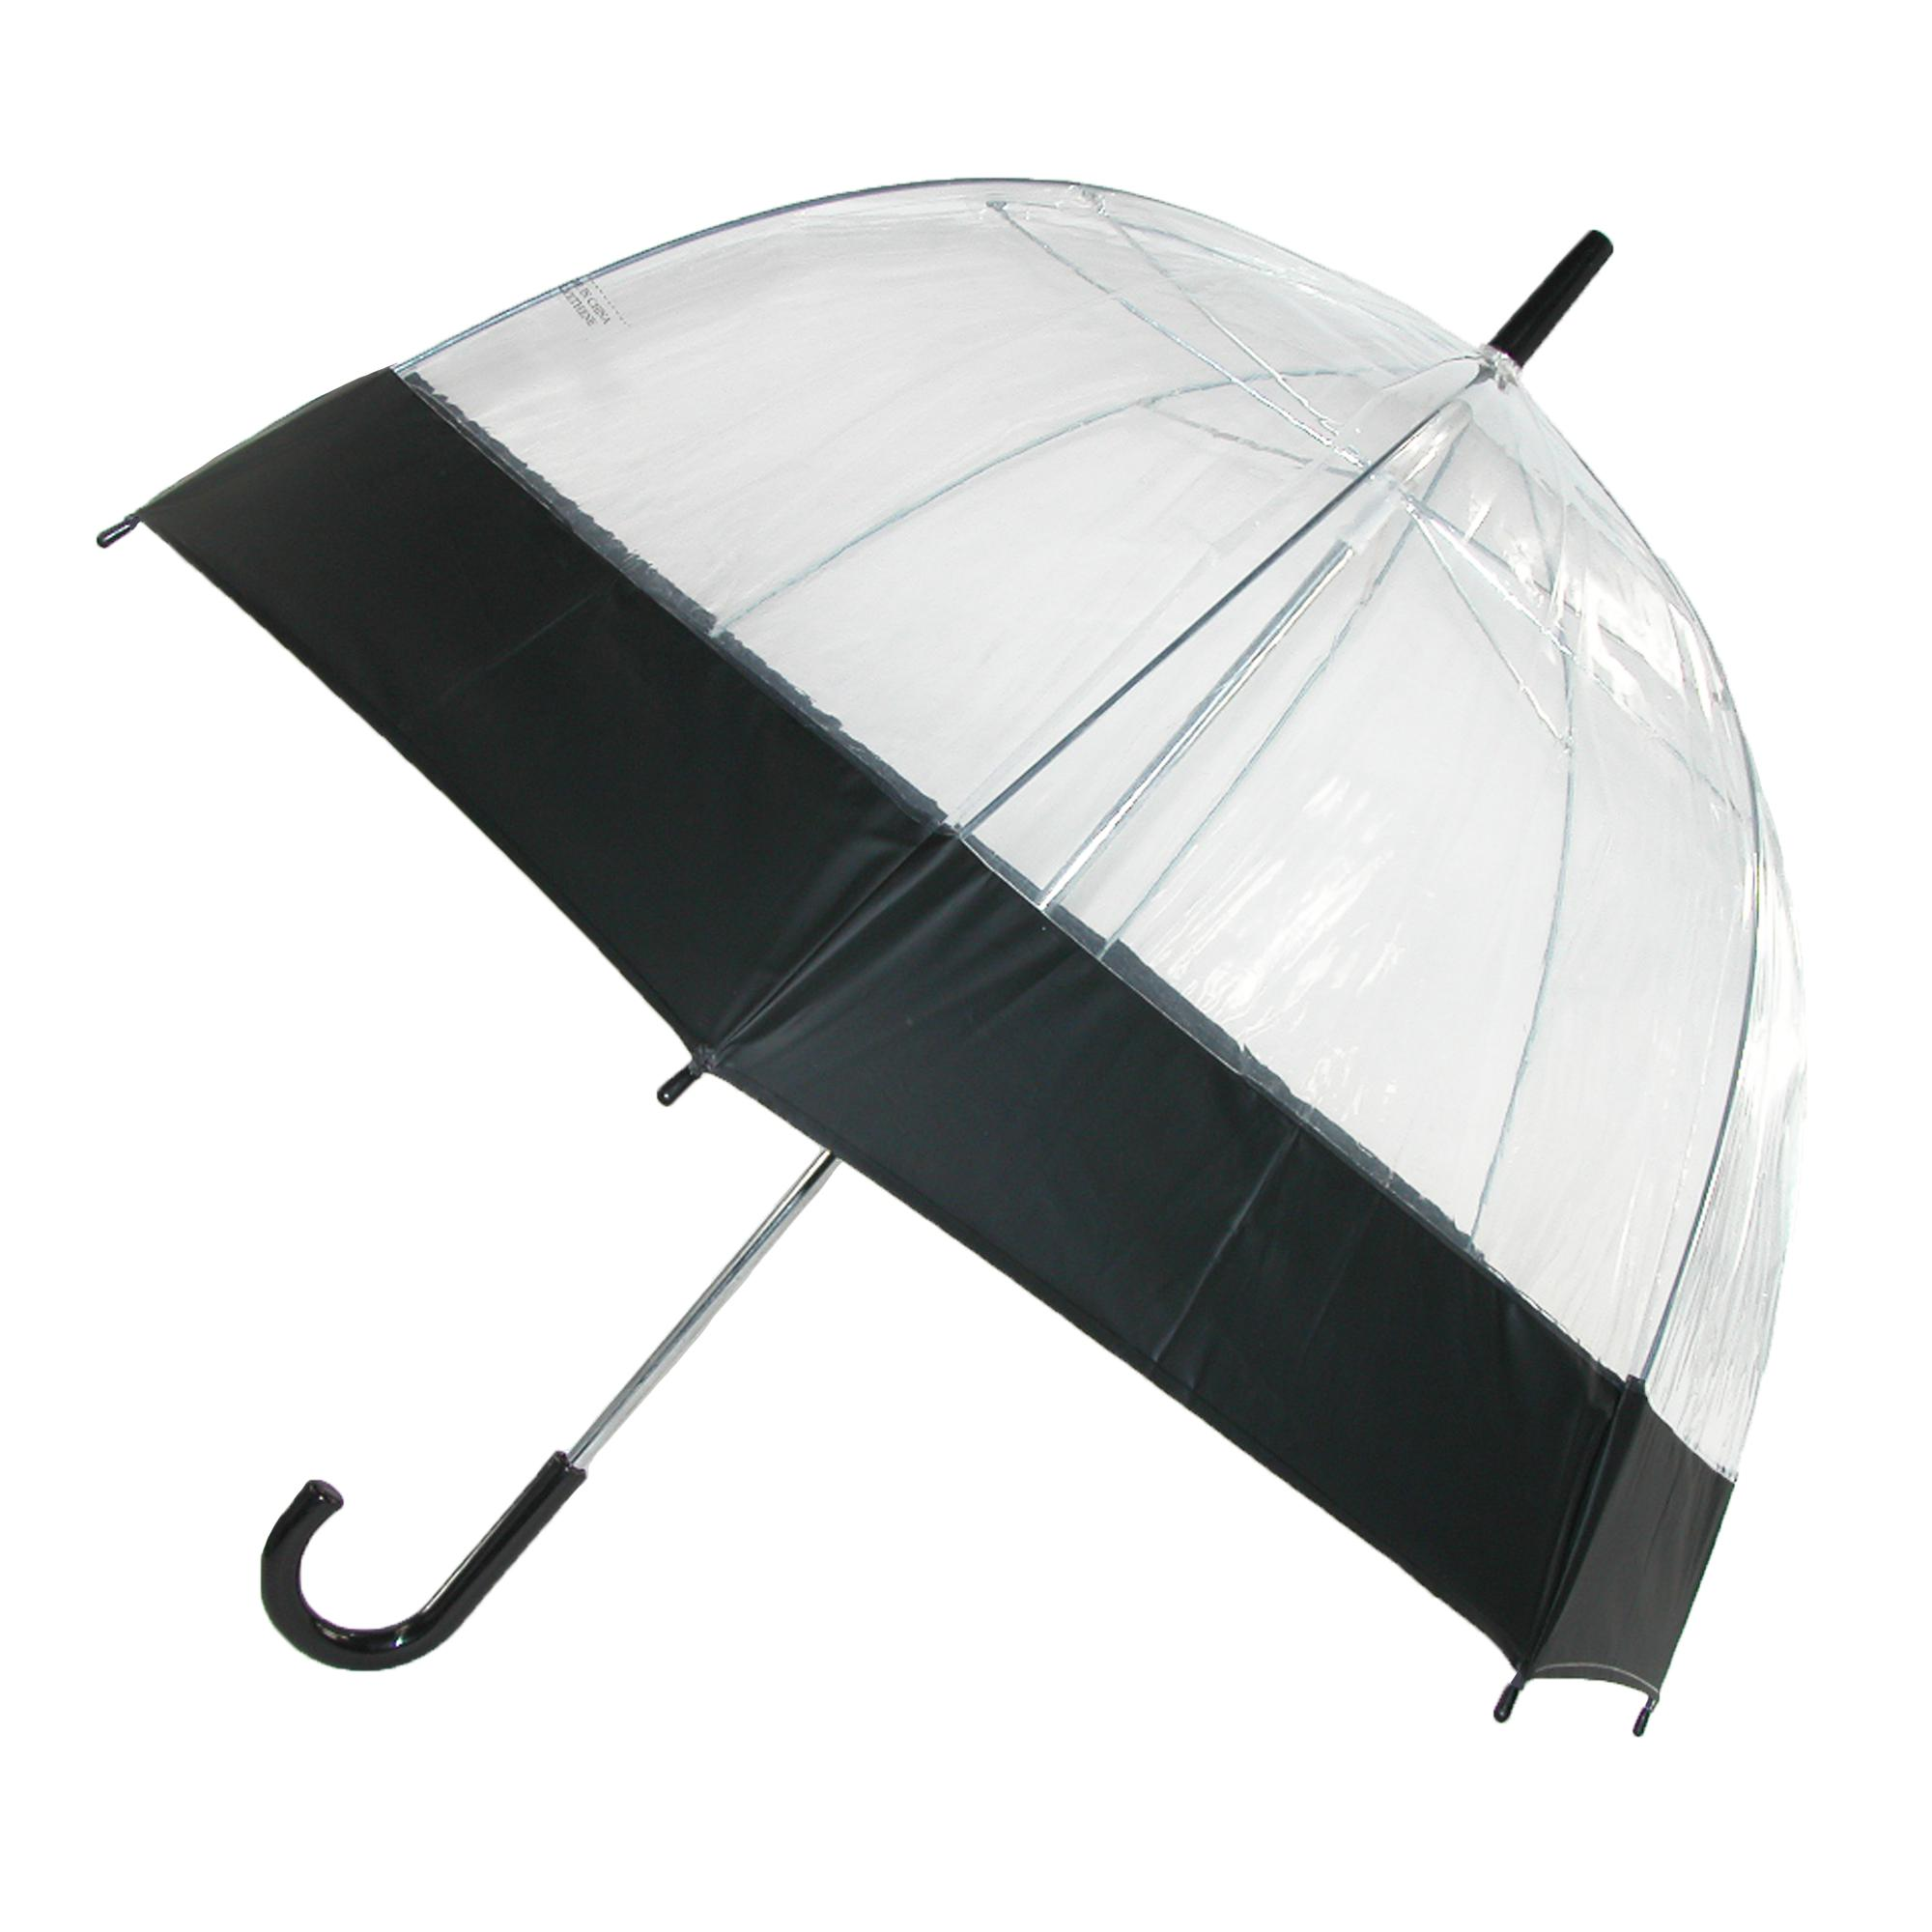 iRain_Clear_Bubble_Dome_with_Colored_Trim_Hook_Handle_Umbrella___one